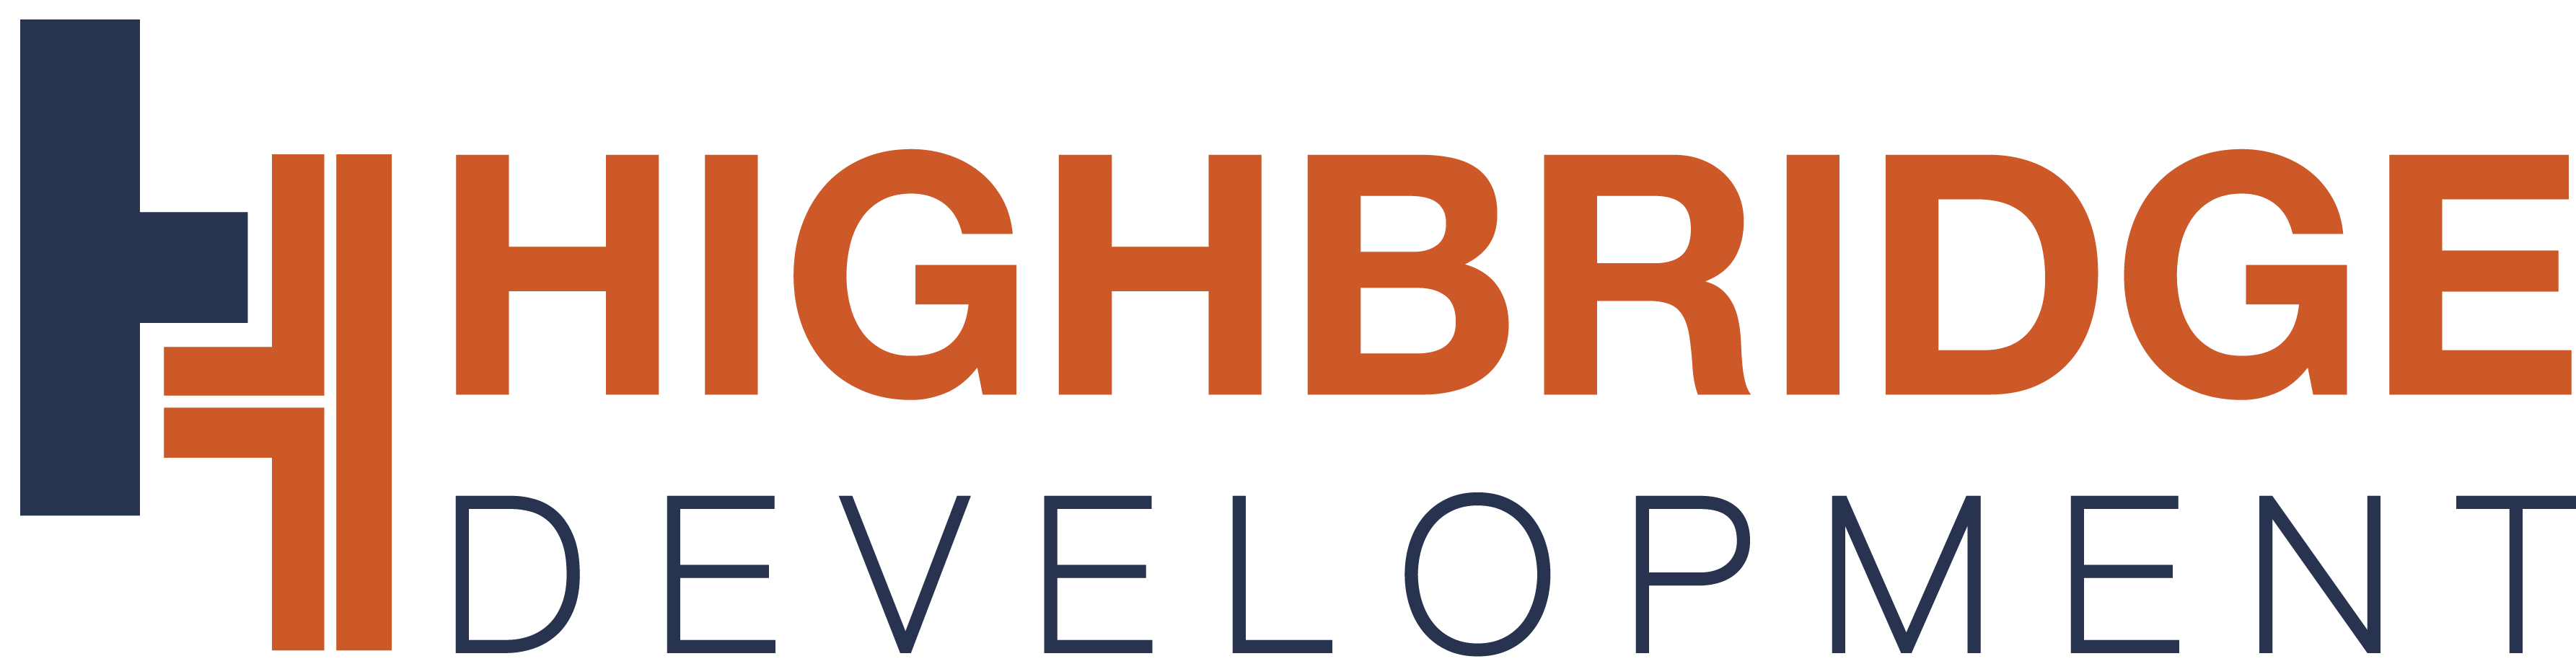 Highbridge Development